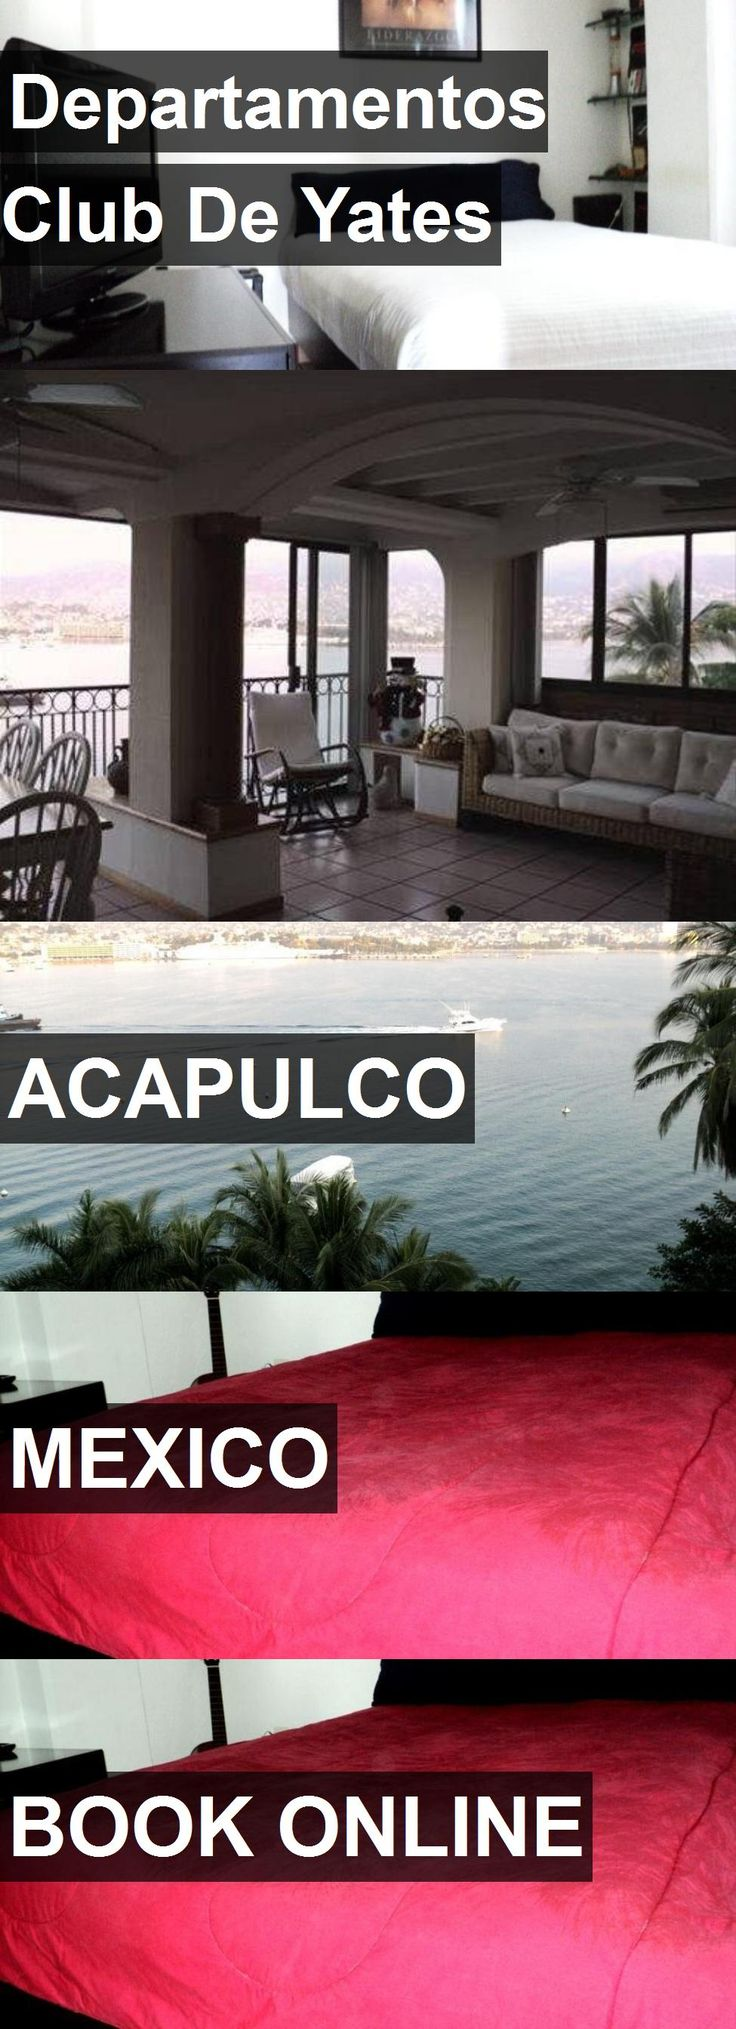 Hotel Departamentos Club De Yates in Acapulco, Mexico. For more information, photos, reviews and best prices please follow the link. #Mexico #Acapulco #travel #vacation #hotel